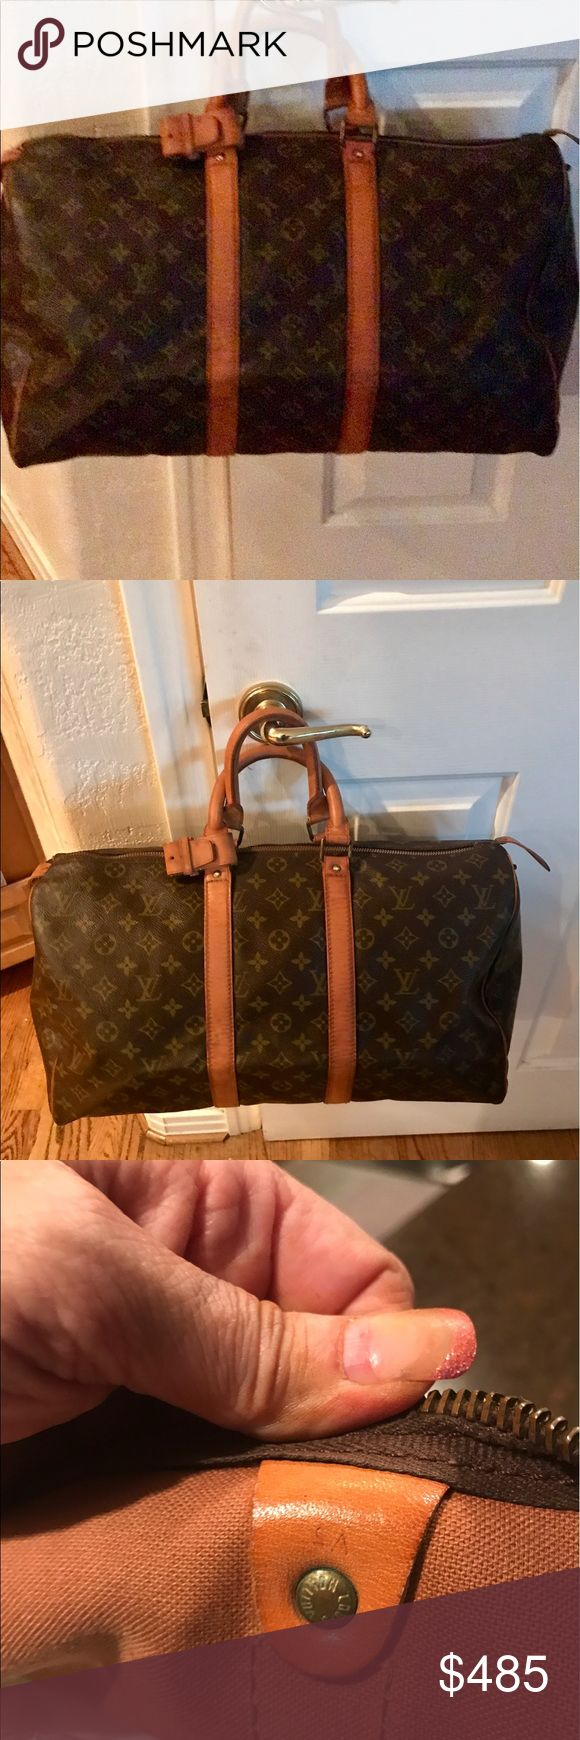 Beautiful Vintage Louis Vuitton Boston Keepall 45 Beautiful Vintage Louis Vuitton Boston Keepall 45 Inside is very clean.  Outside canvas is in good condition no rips or tears.  The vachetta  leather is in good with a few fold cracks and ridges from age.  Zipper works goid.  Great  travel bag from the luxury of Louis Vuitton Datecode SA rest is hard to read Louis Vuitton Bags Travel Bags